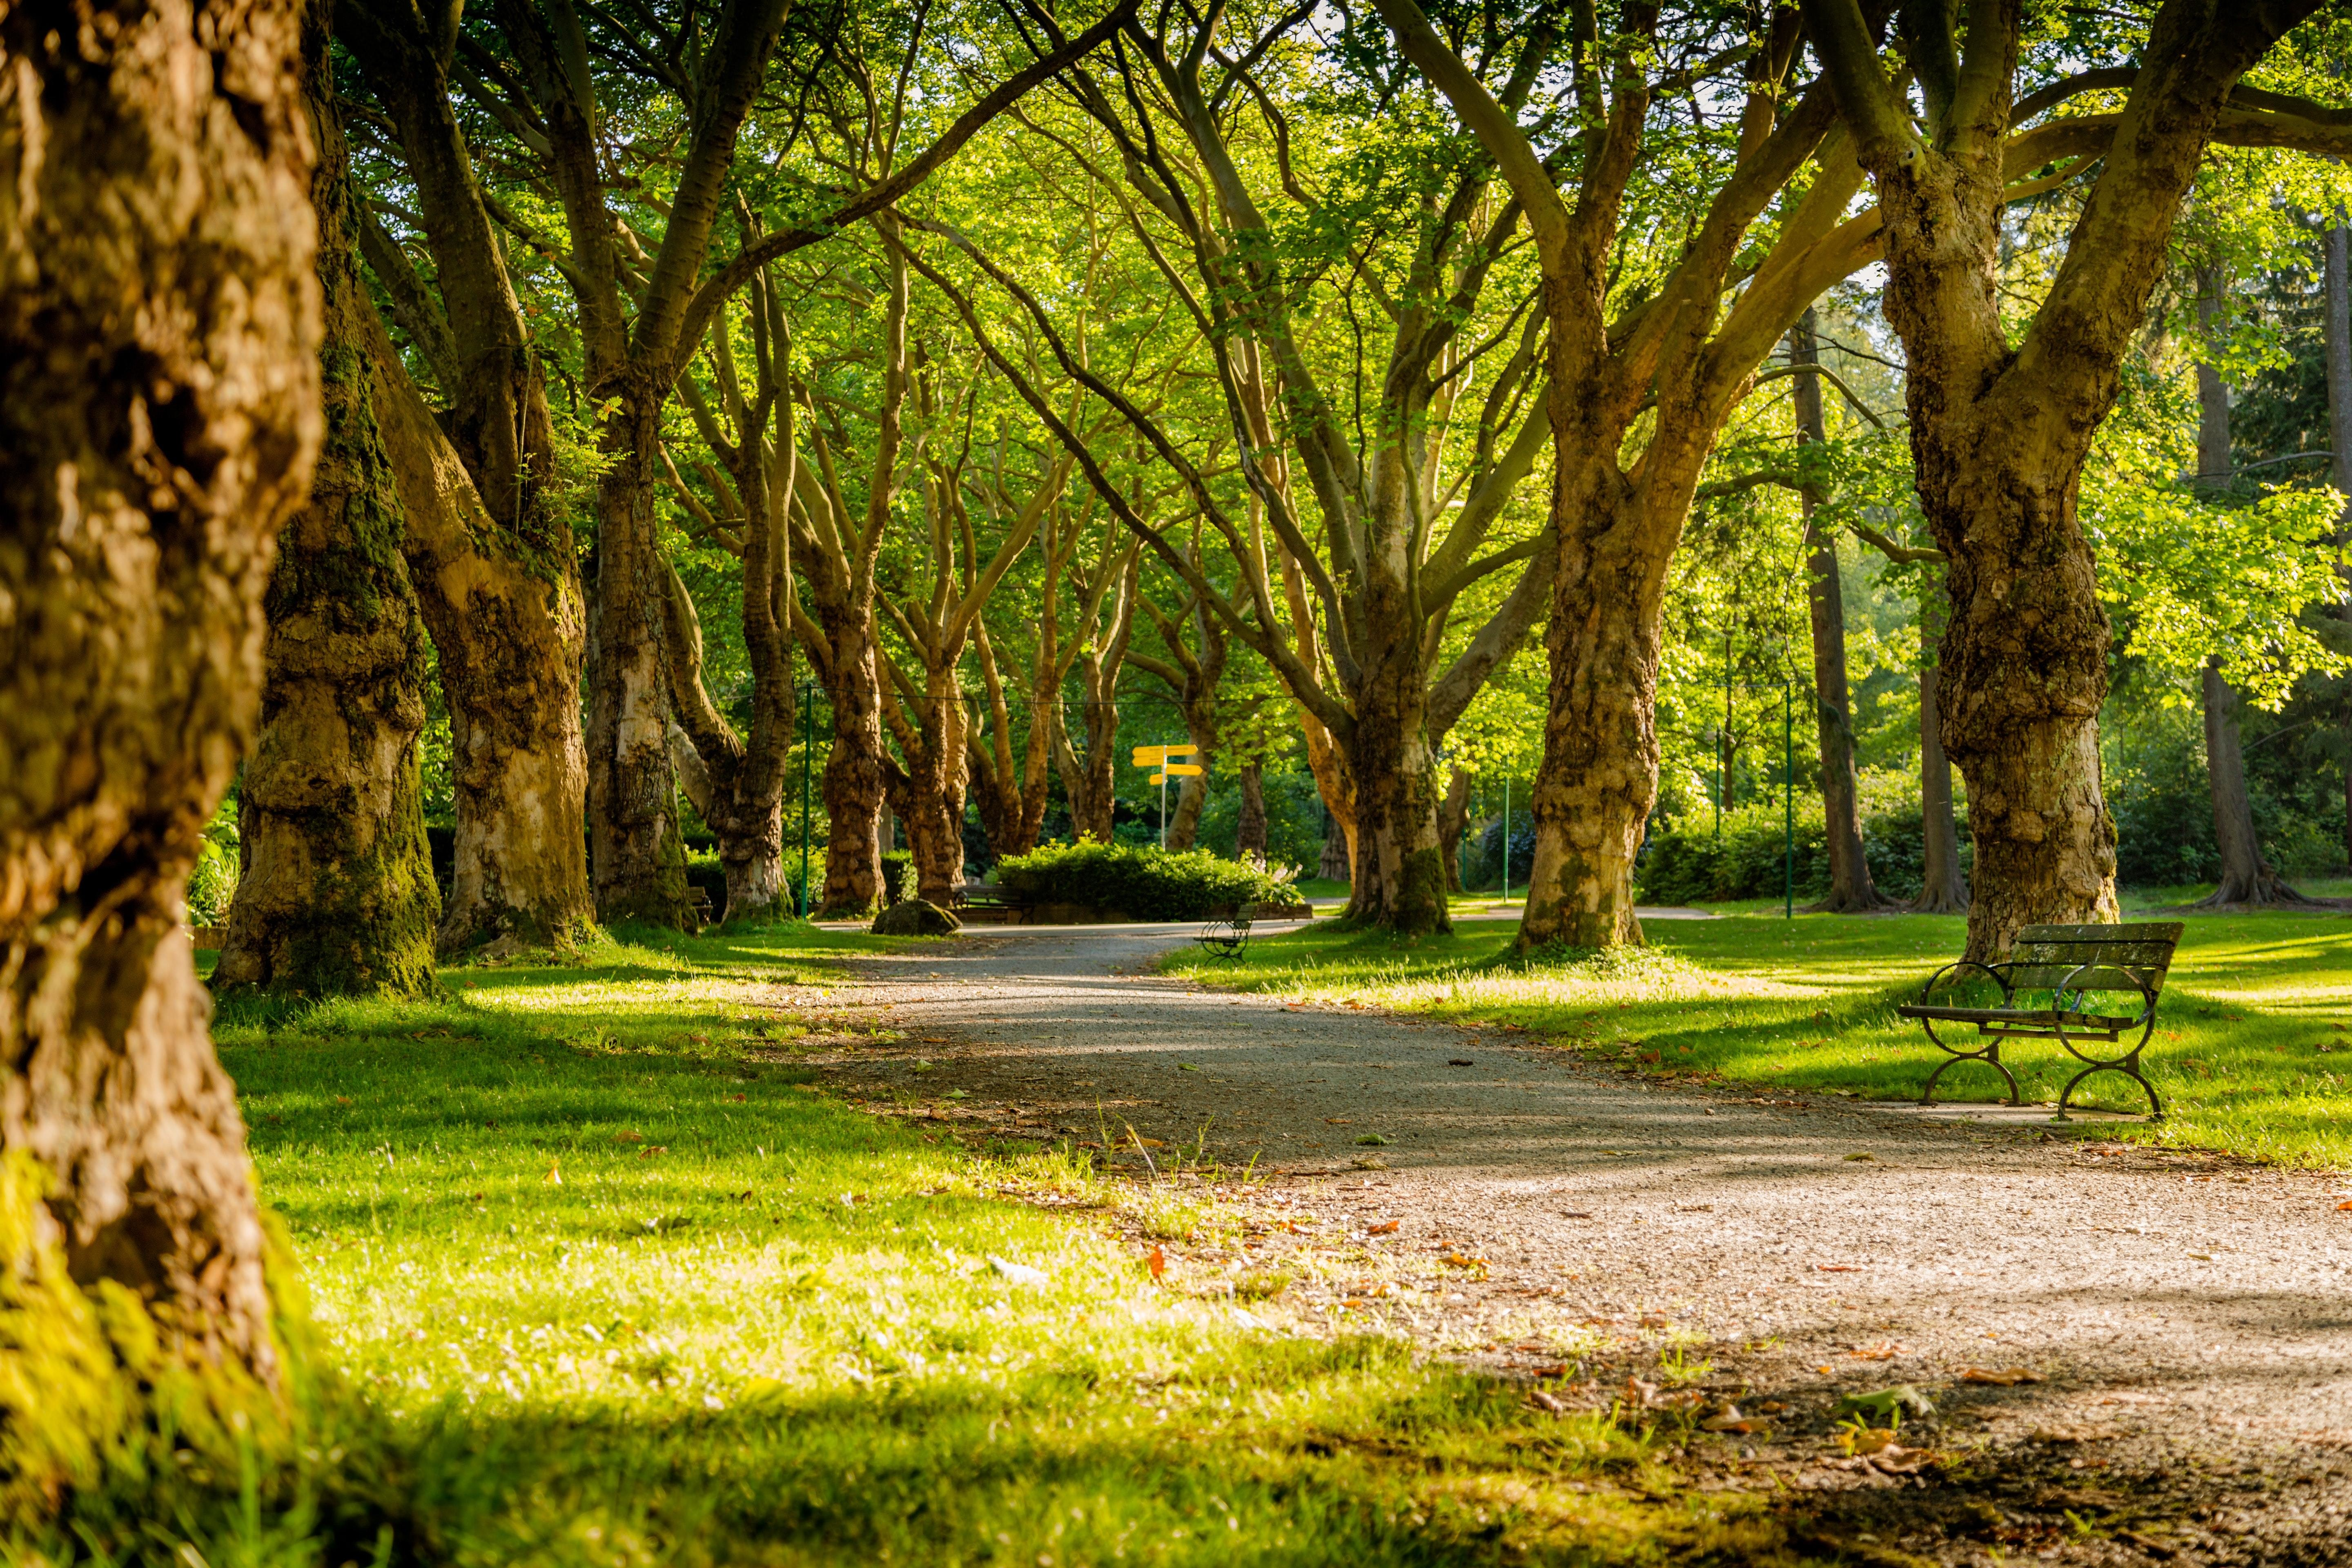 in the U.S., time in green parks like this one here is being prescribed as a type of 'medication' by some doctors